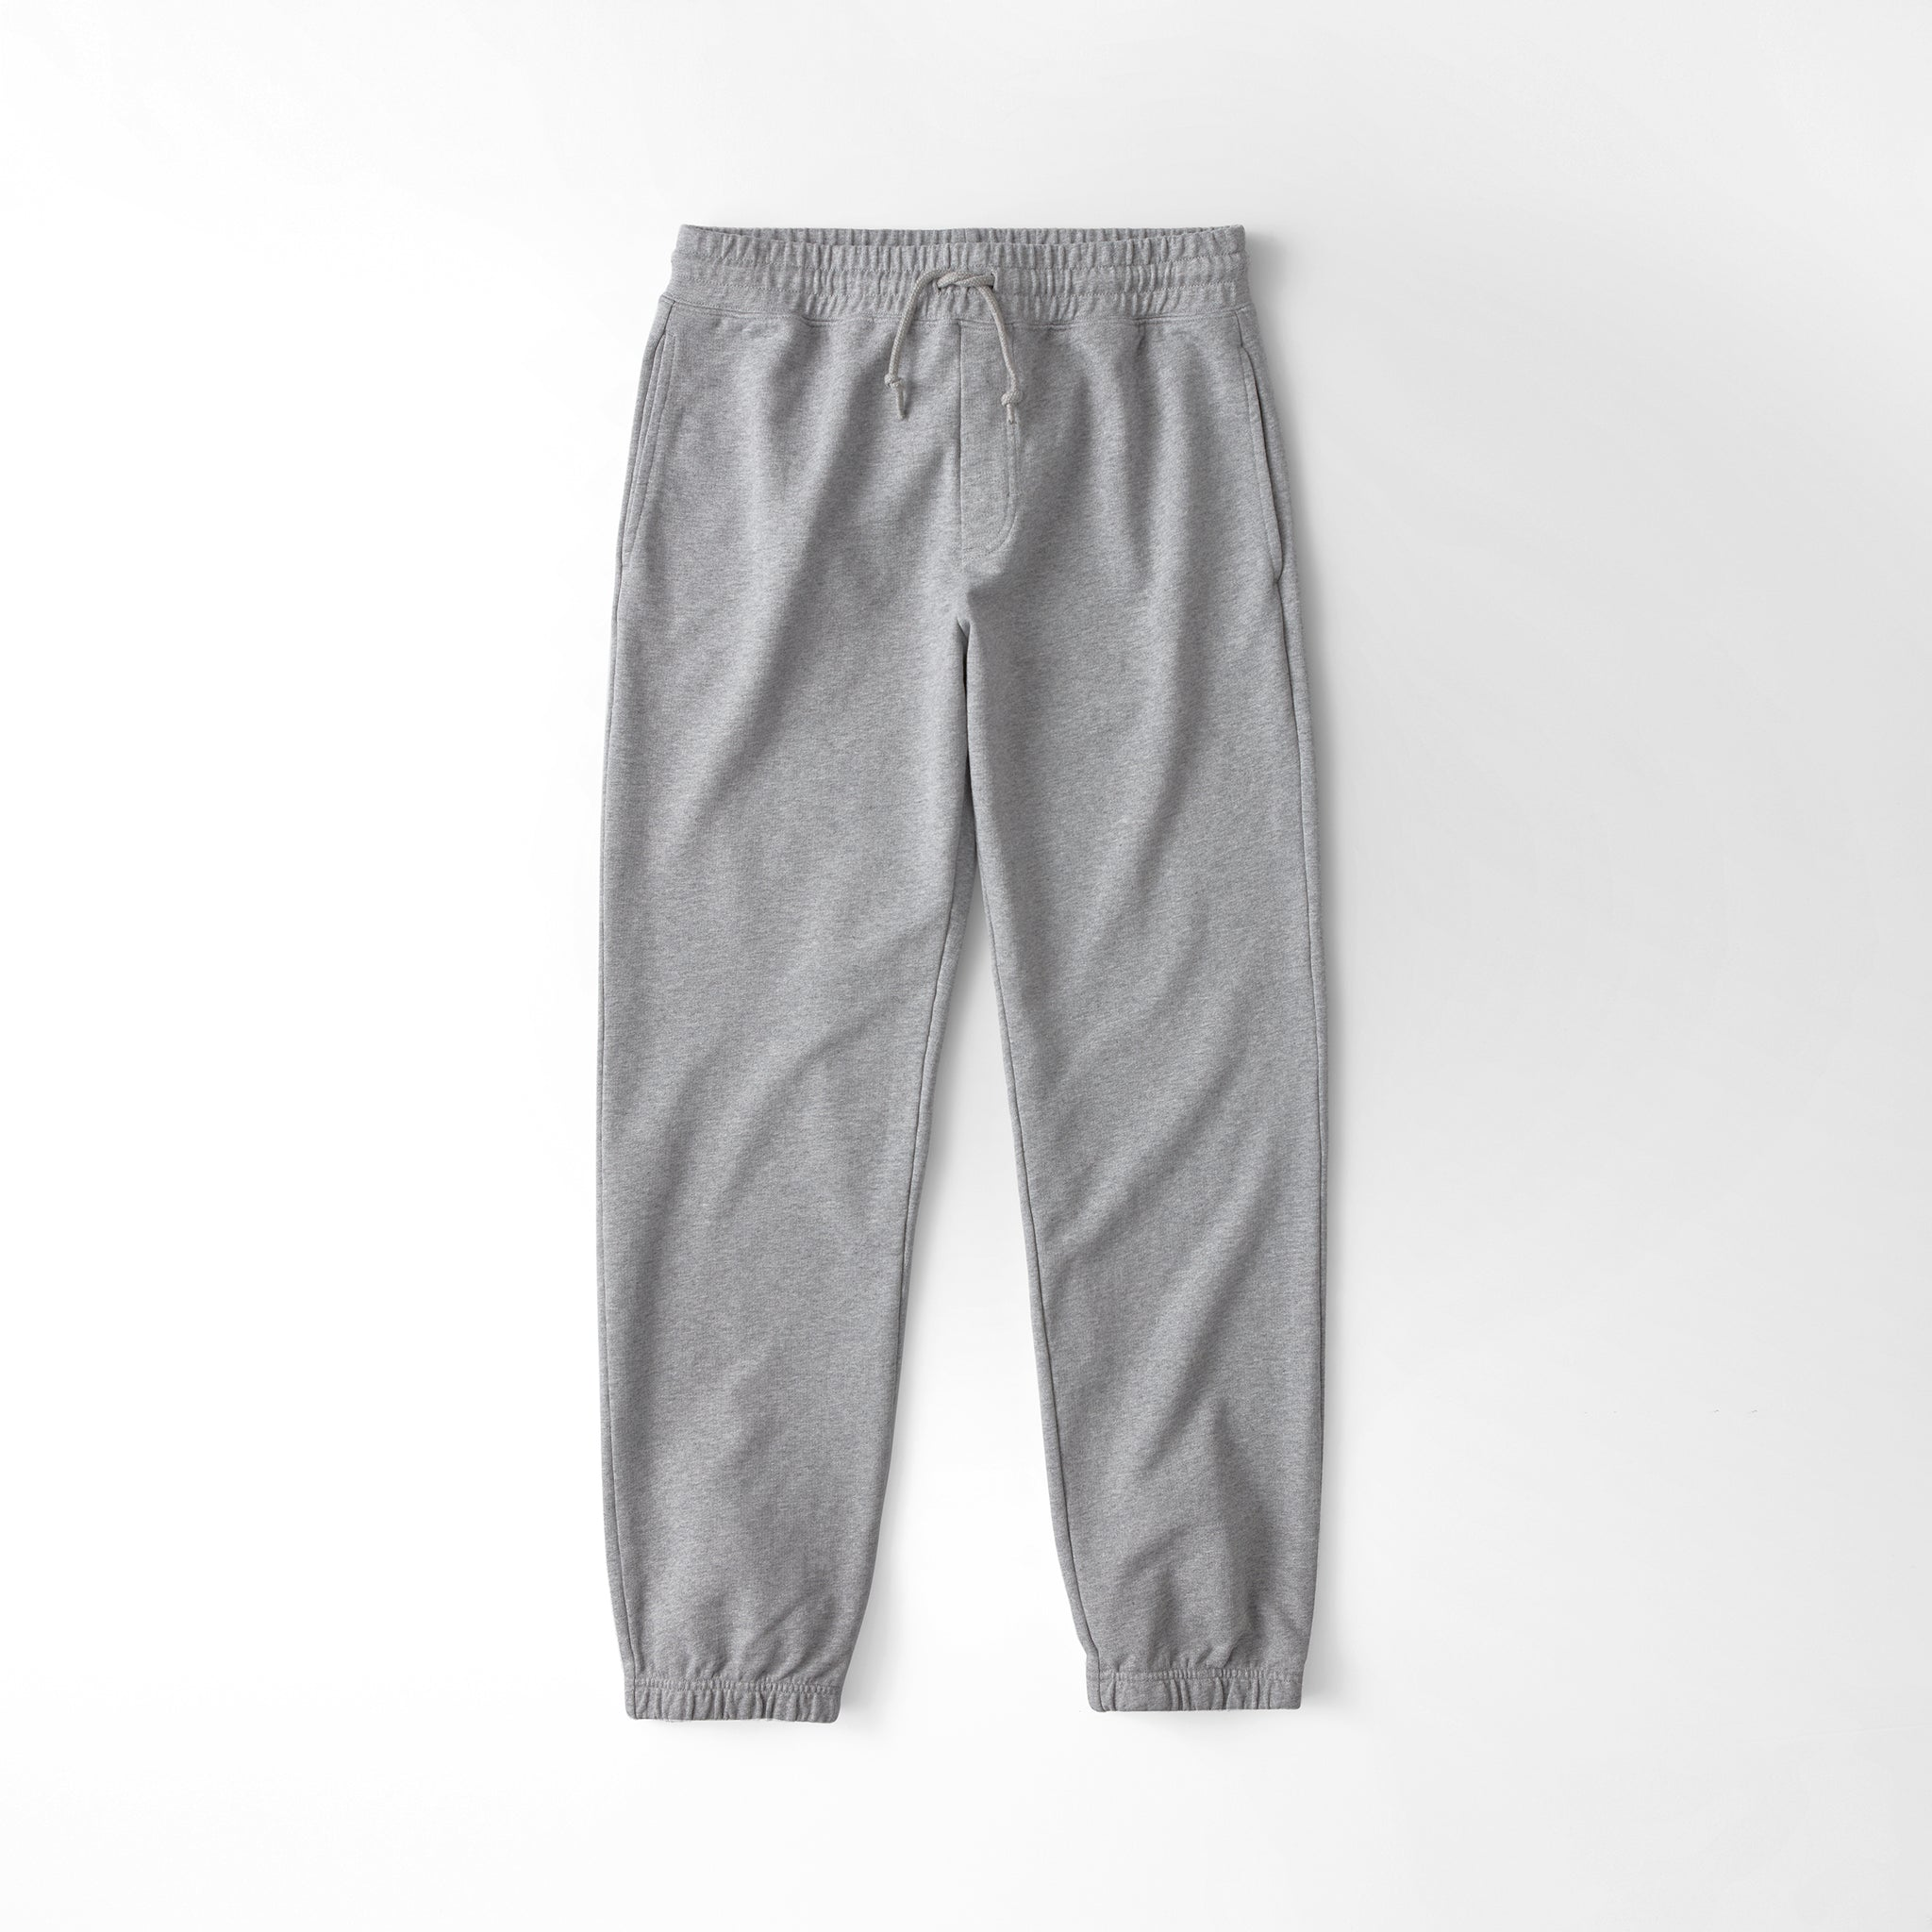 Sweatpant Grey - Unrecorded